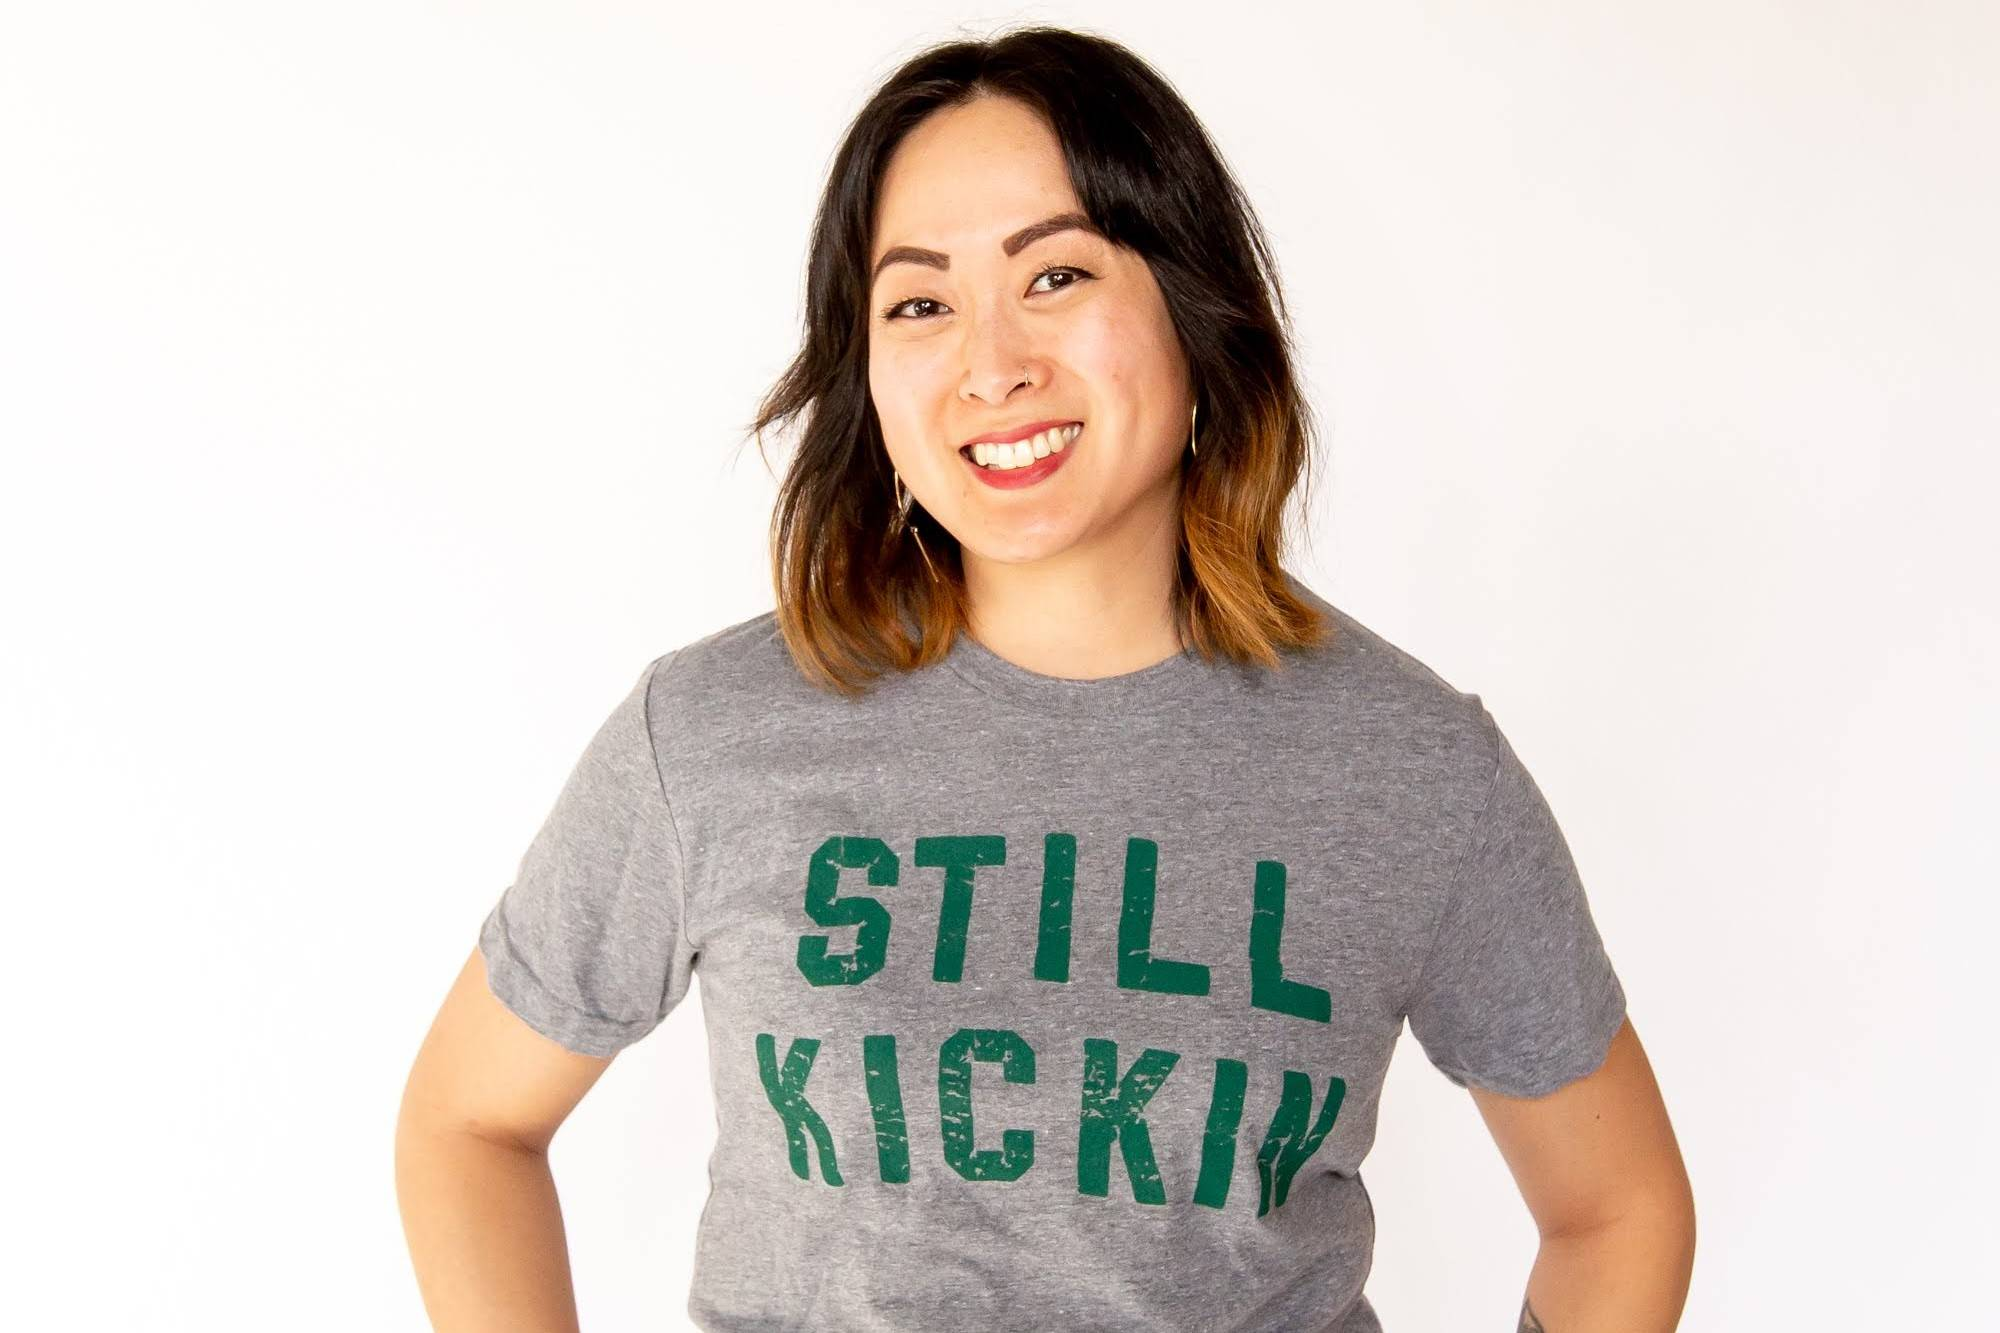 photo of Rebecca Sharbono wearing a grey t-shirt with green Still Kickin print